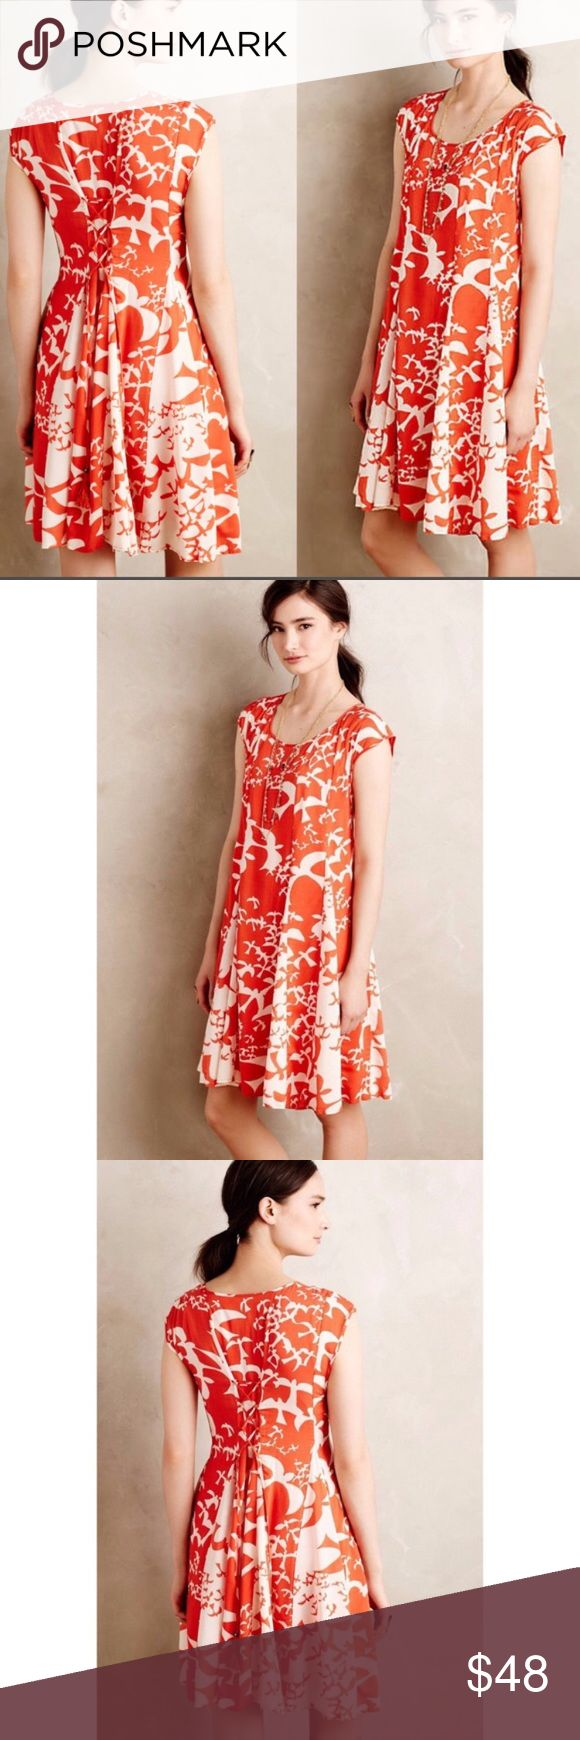 d0a9d41372333 🎉Anthropologie Maeve Indiga Swing Dress🎉 Anthropologie Maeve orange and  white Indiga swing dress. Fully lined. Features relaxed swingy silhouette,  ...